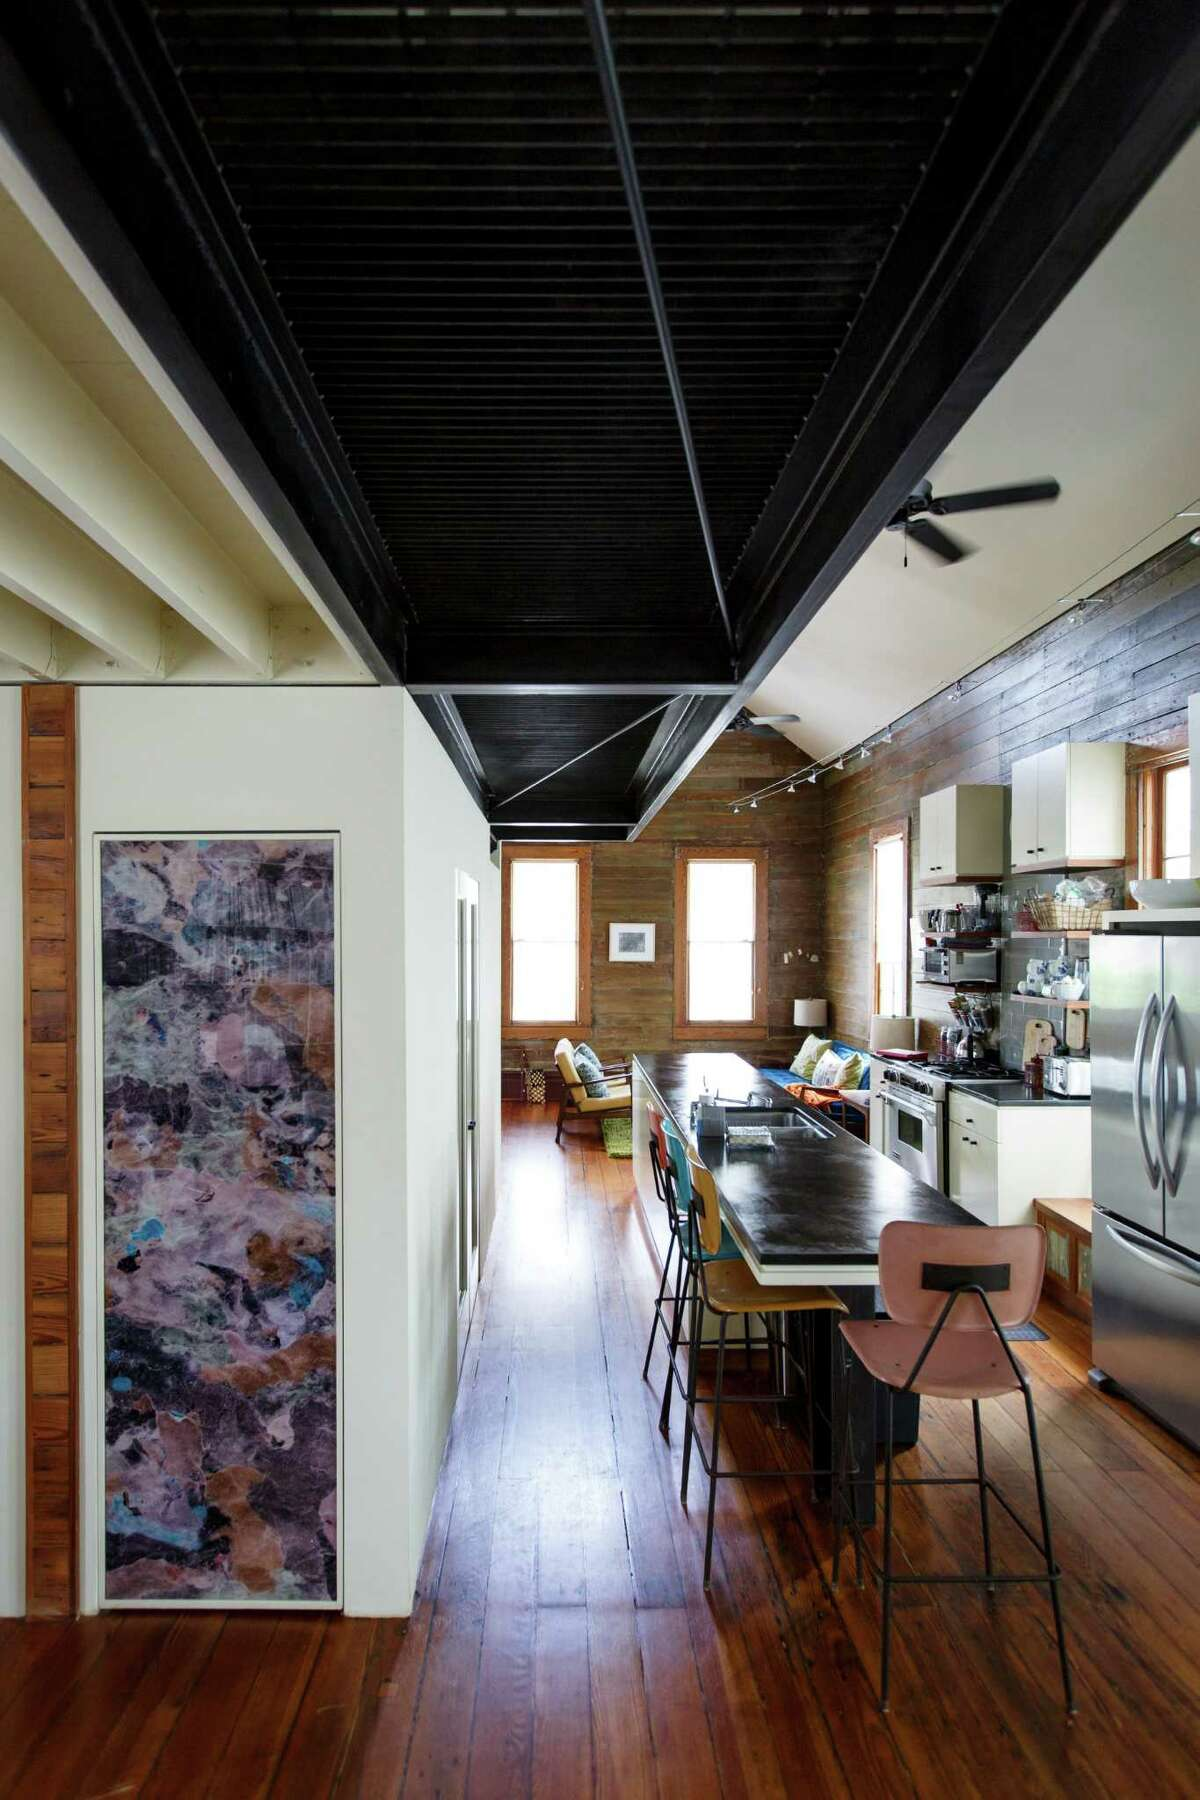 The open kitchen area in David Ansell and his wife Bennie Flores Ansell's Sixth Ward home inlcudes a personalized photo over the pantry door by artist Linda Hayward. ( Michael Paulsen / Houston Chronicle )